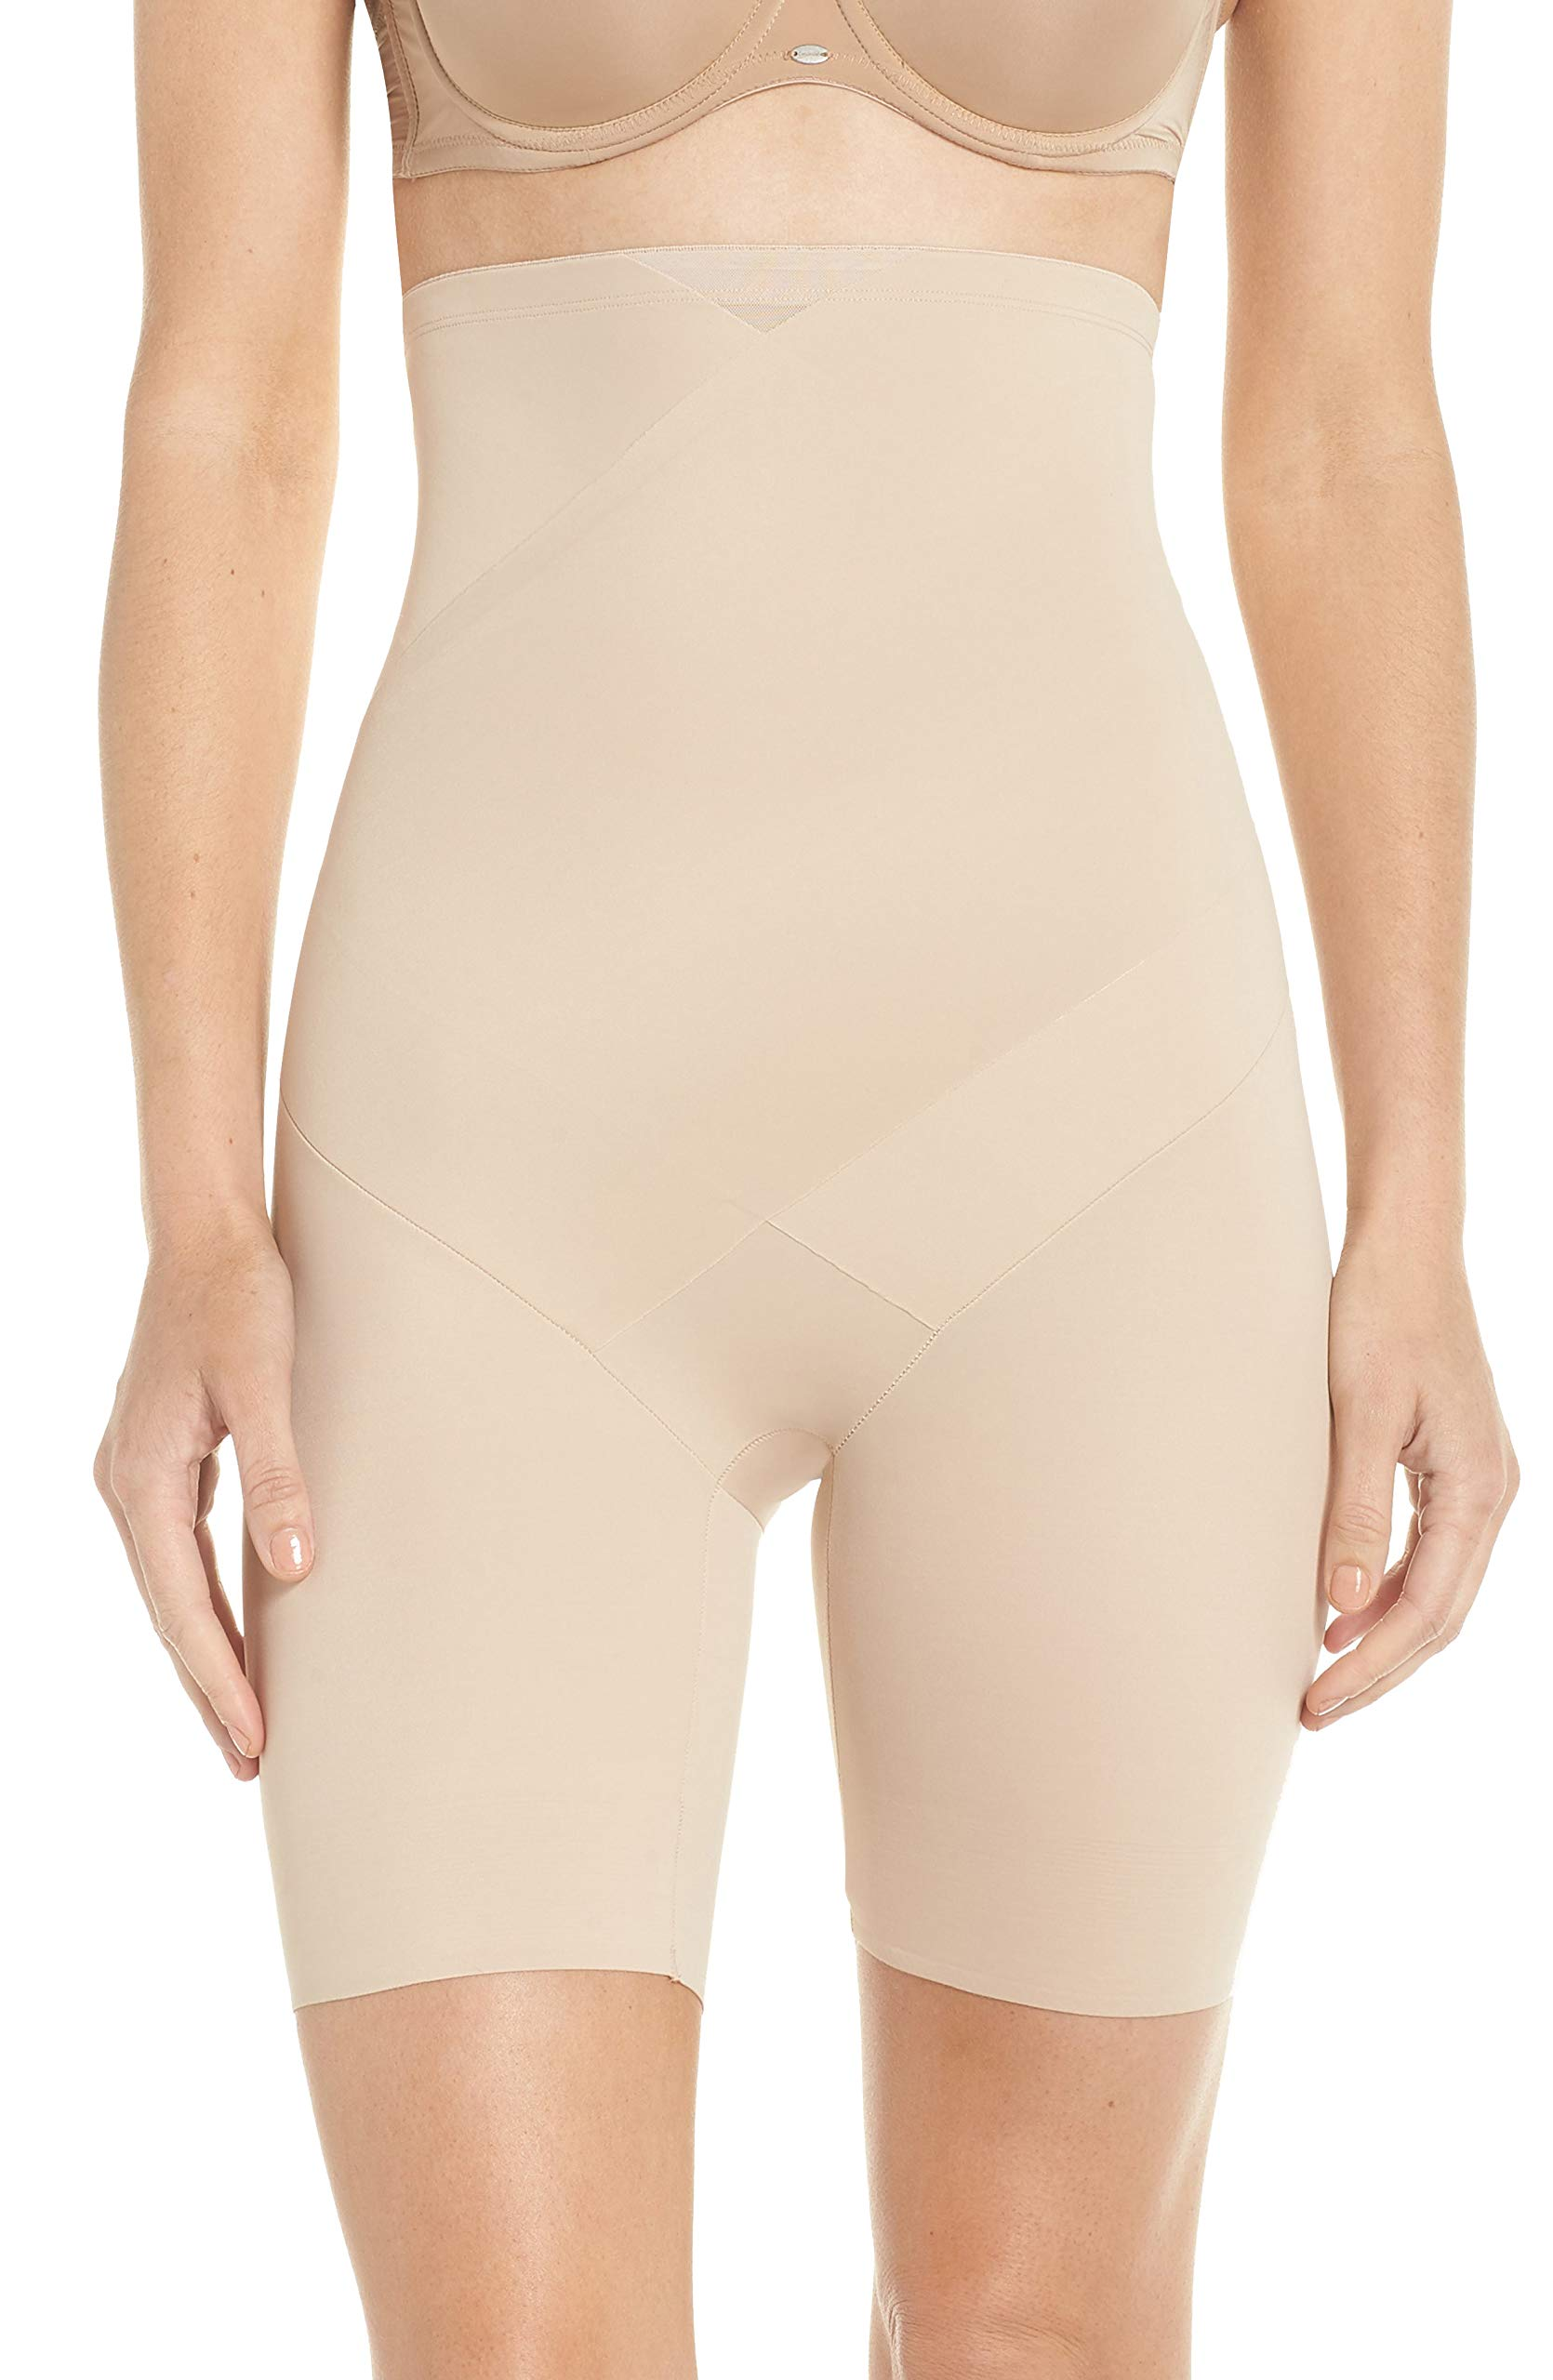 TC Fine Intimates Tummy Tux High-Waist Firm Control Thigh Slimmer, M, Nude